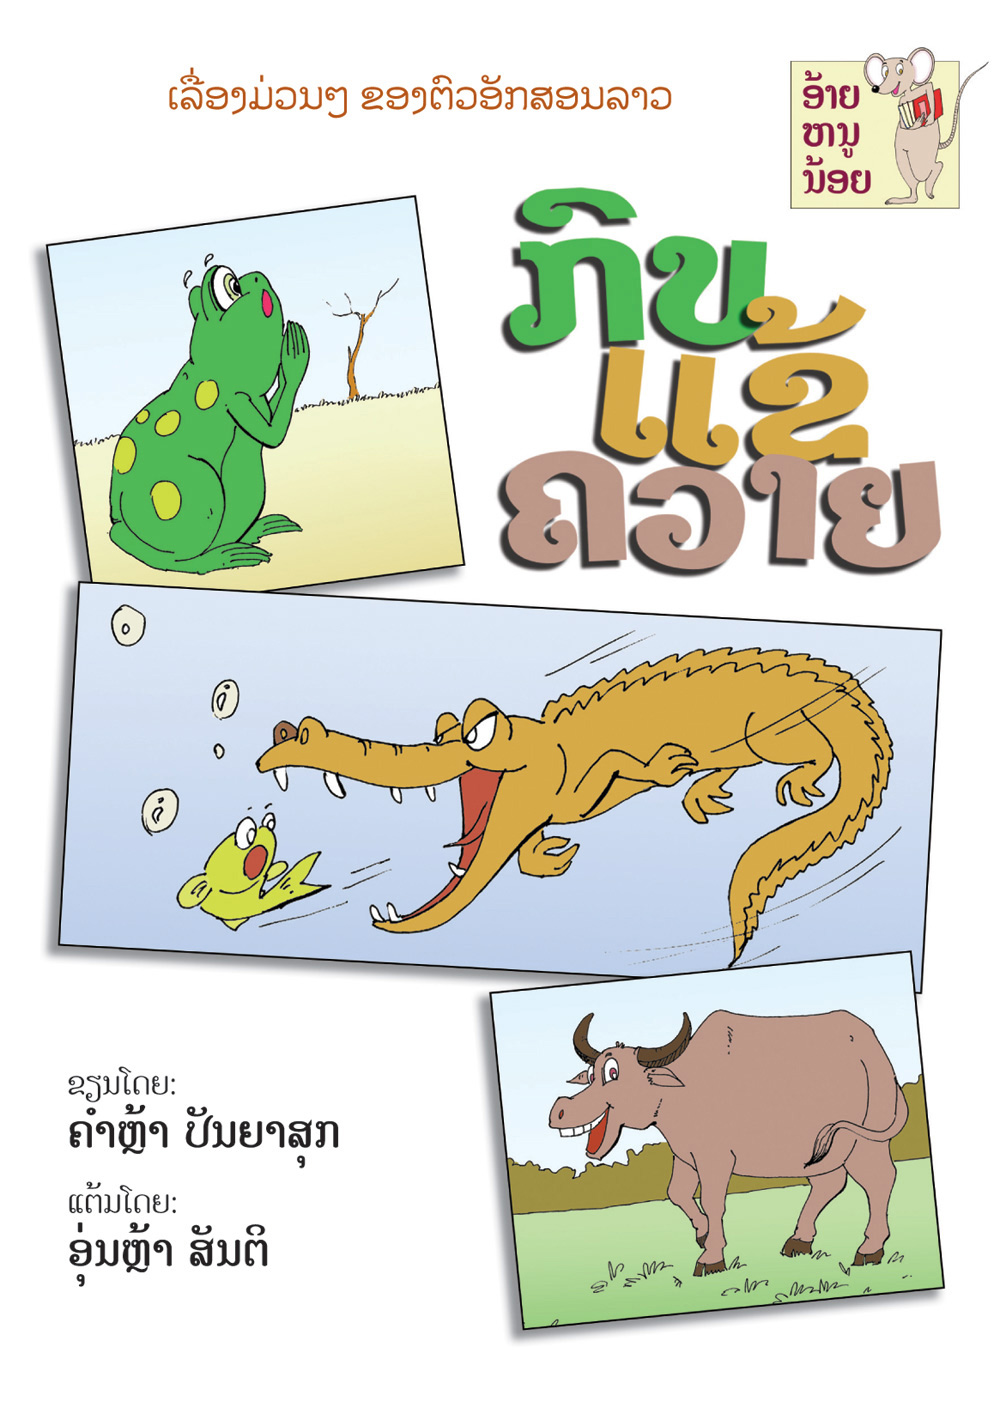 Frog, Alligator, Buffalo large book cover, published in Lao language